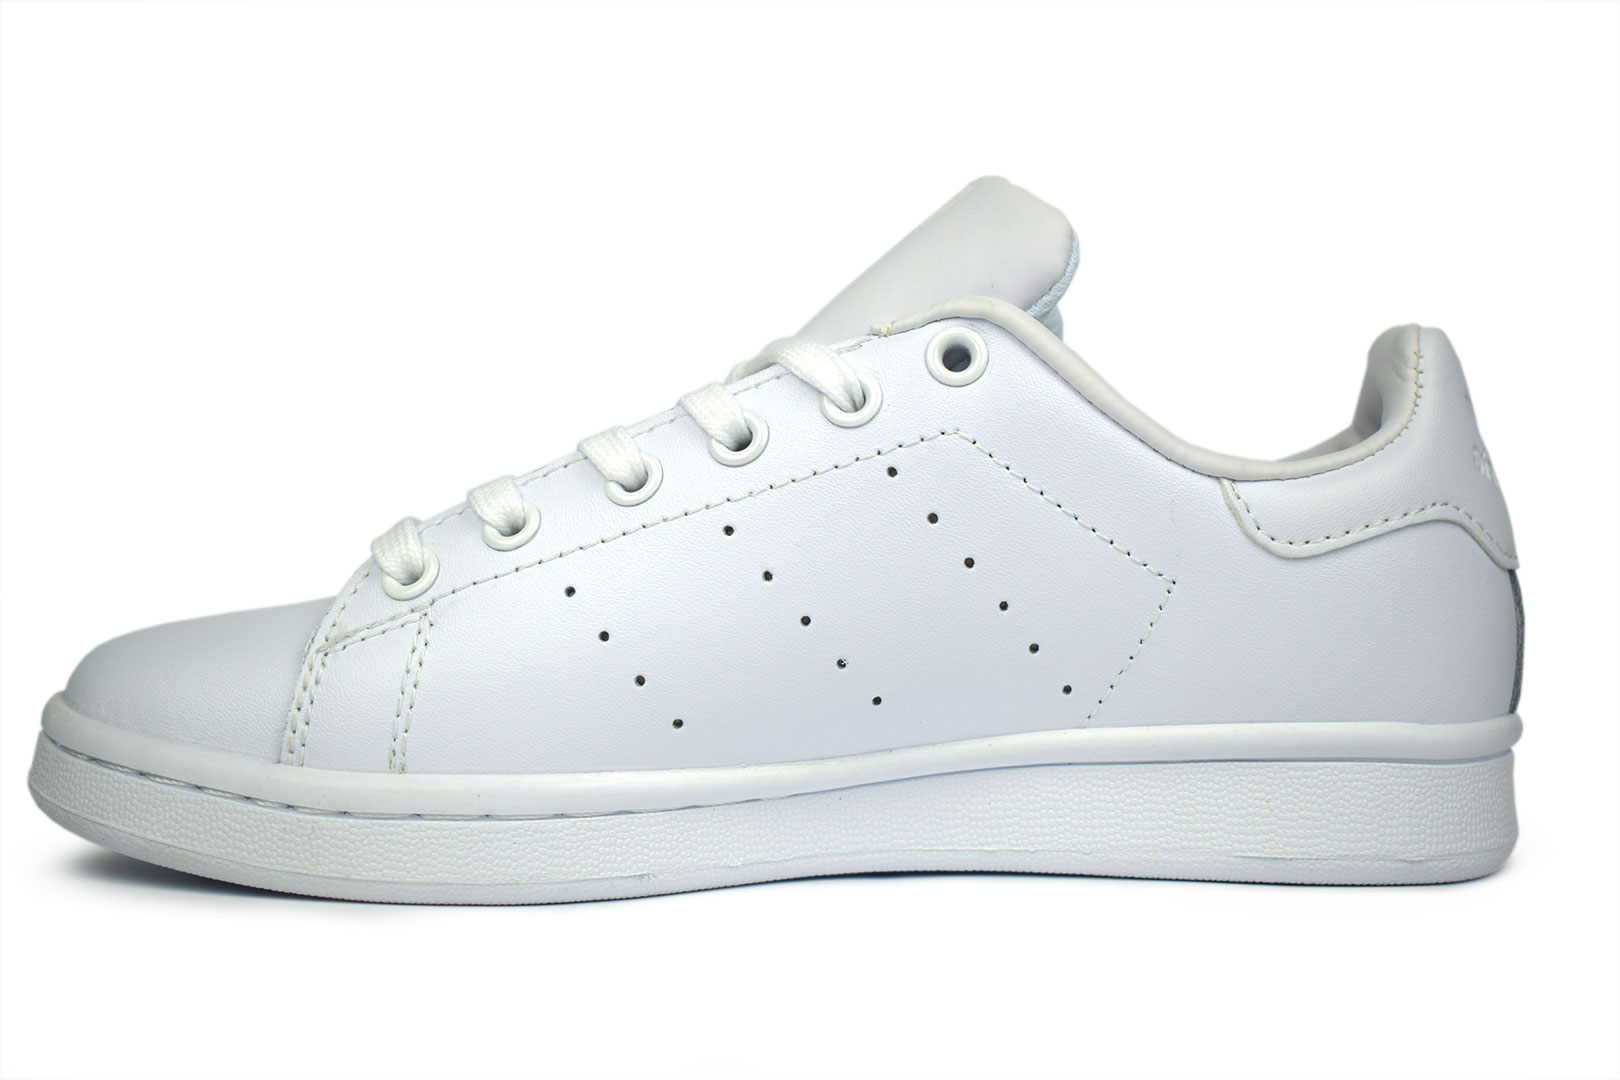 Женские кроссовки Adidas Stan Smith Women White,White - фото №2